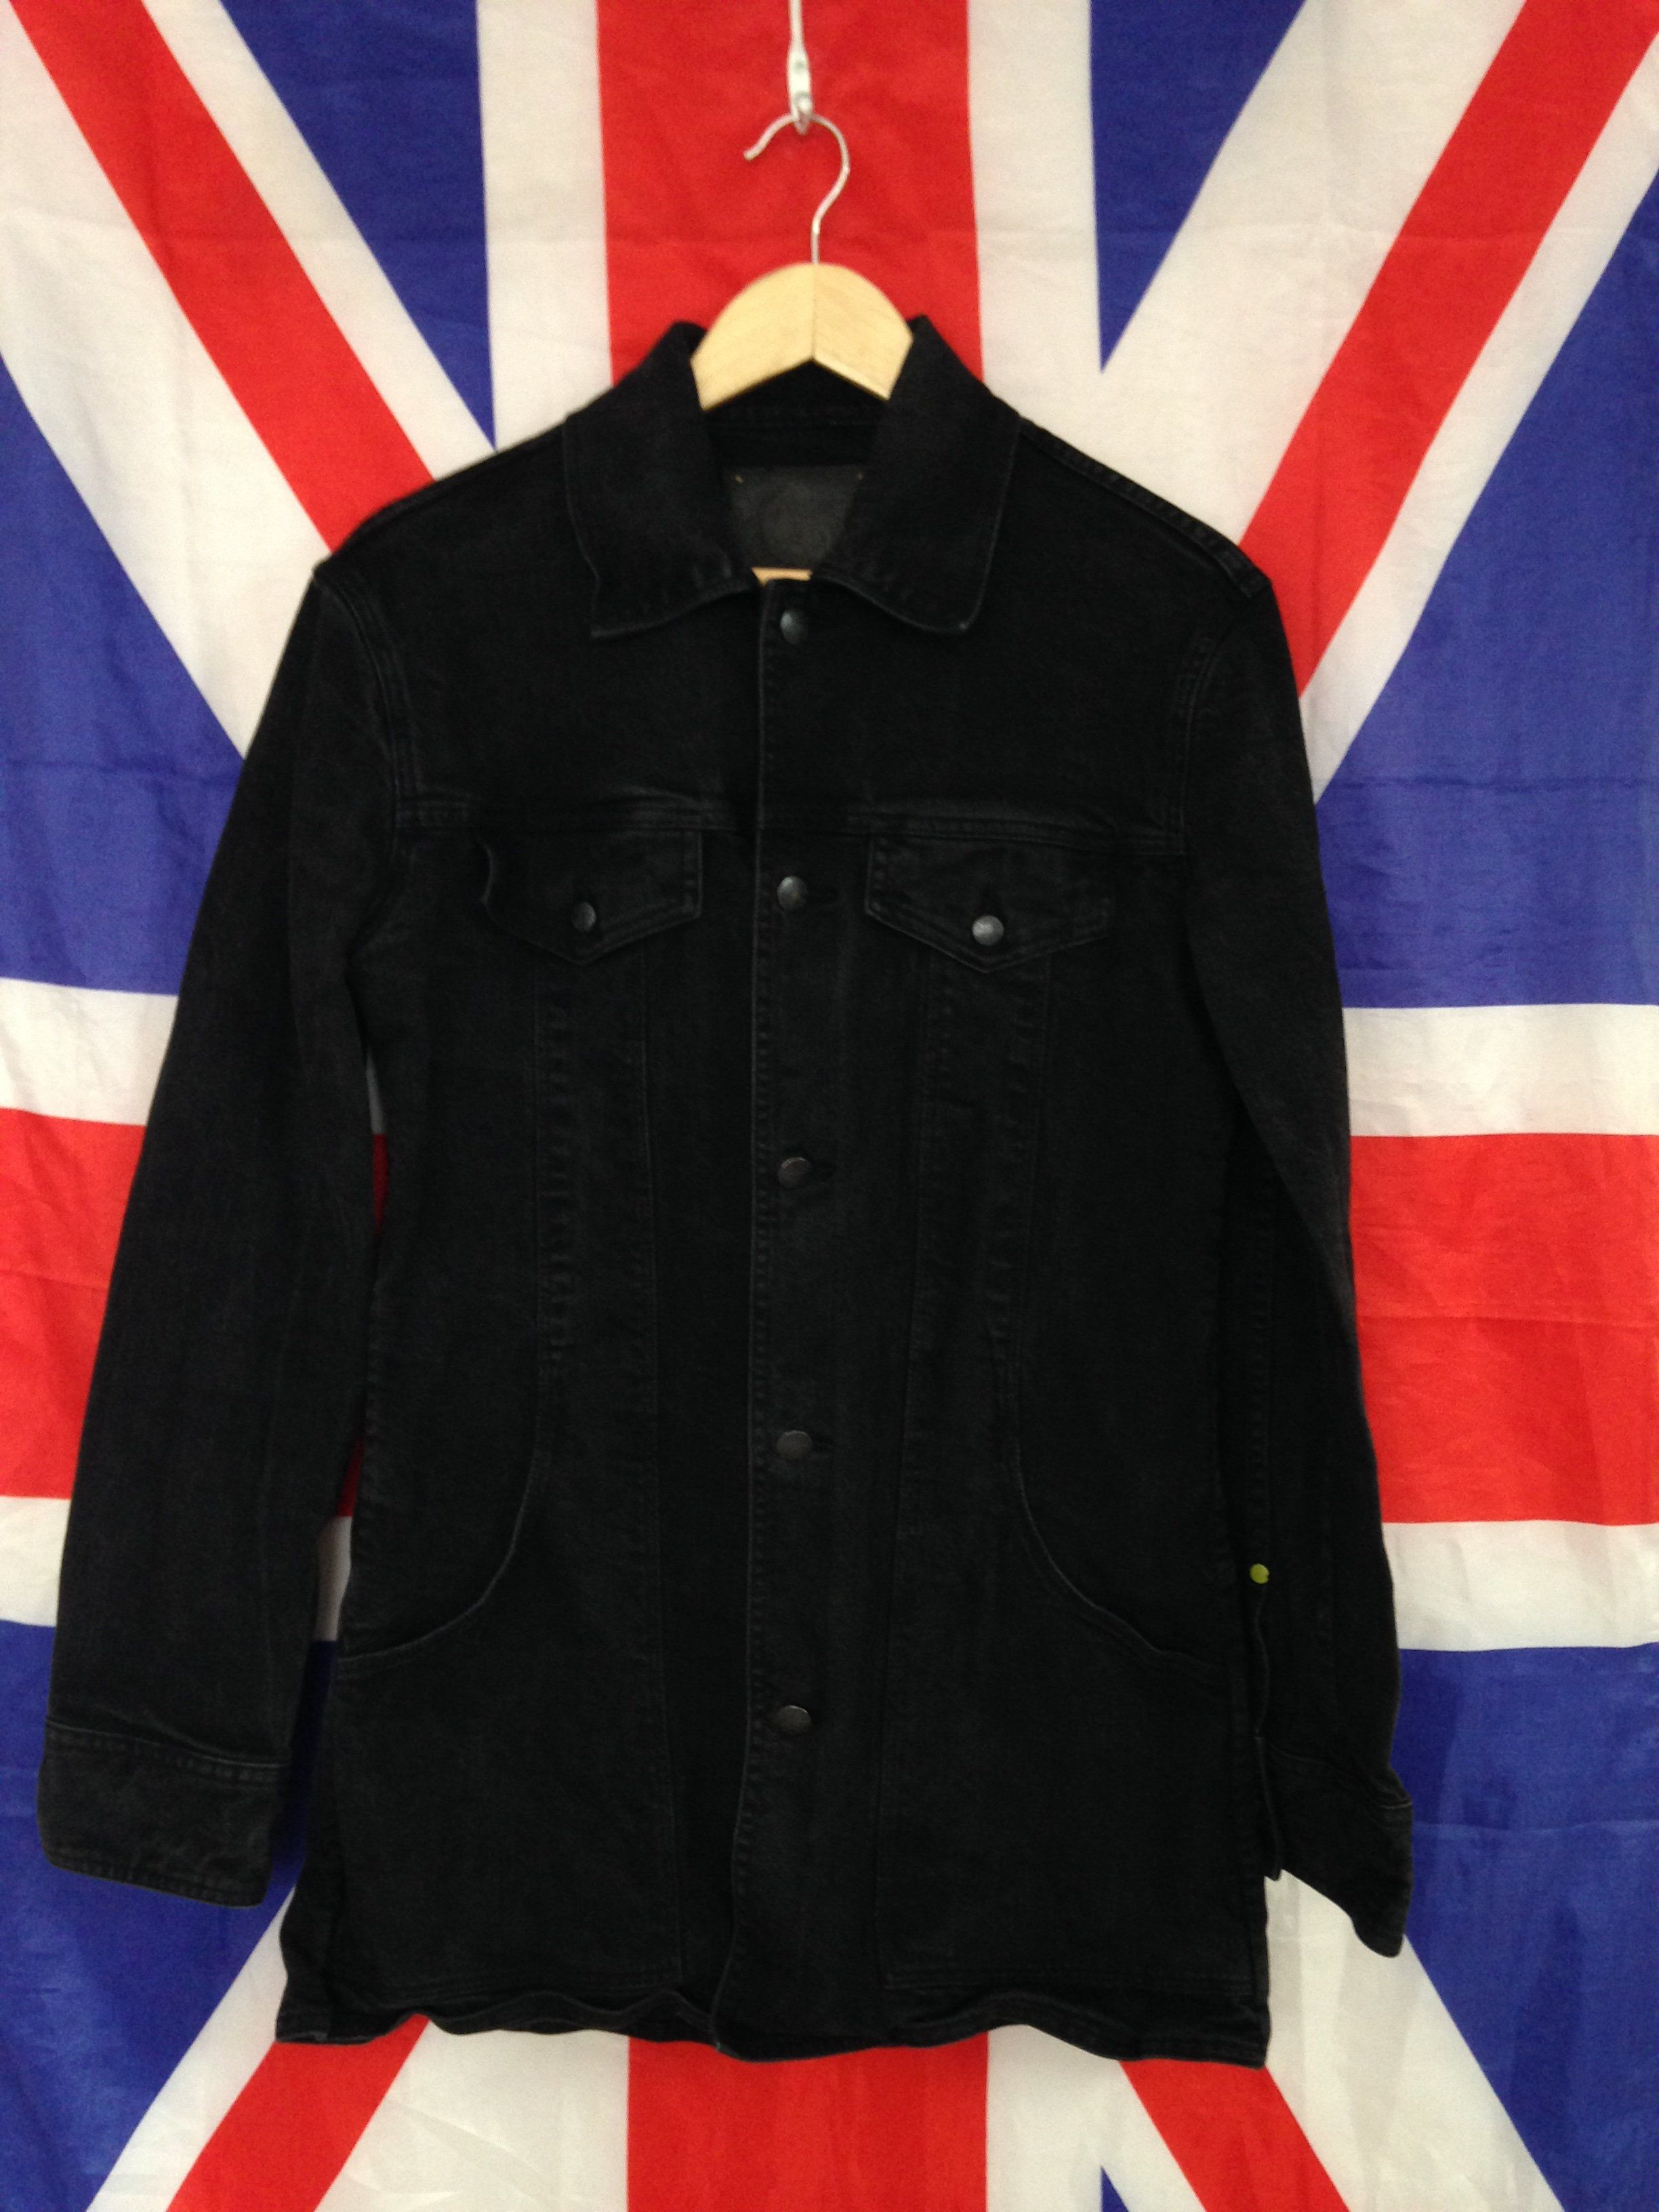 Pretty Green Long Denim Jacket Mint Condition Has Slight Denim Fade But Was Designed With This Wash Great Details As Jackets Black Denim Jacket Pretty Green [ 3264 x 2448 Pixel ]